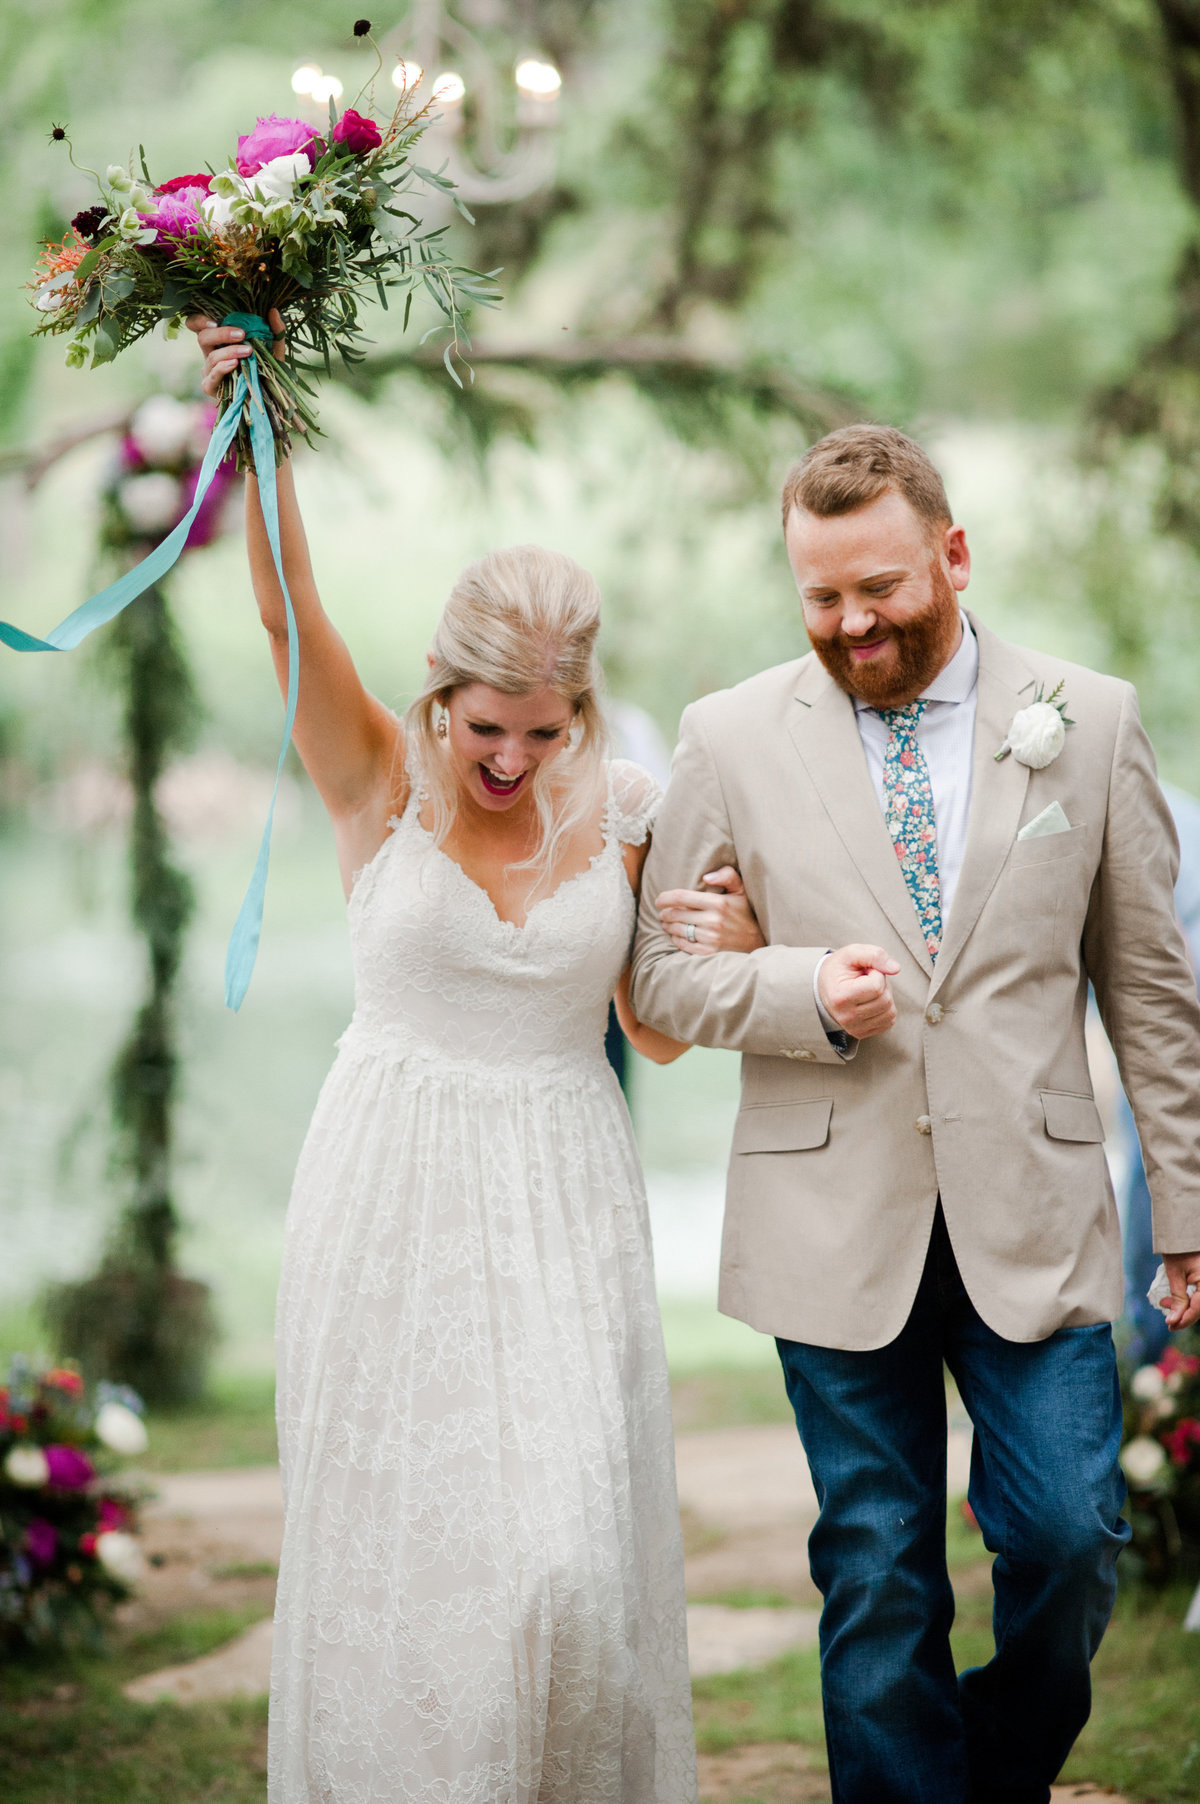 GRANT CANDICE WED 2016-0326